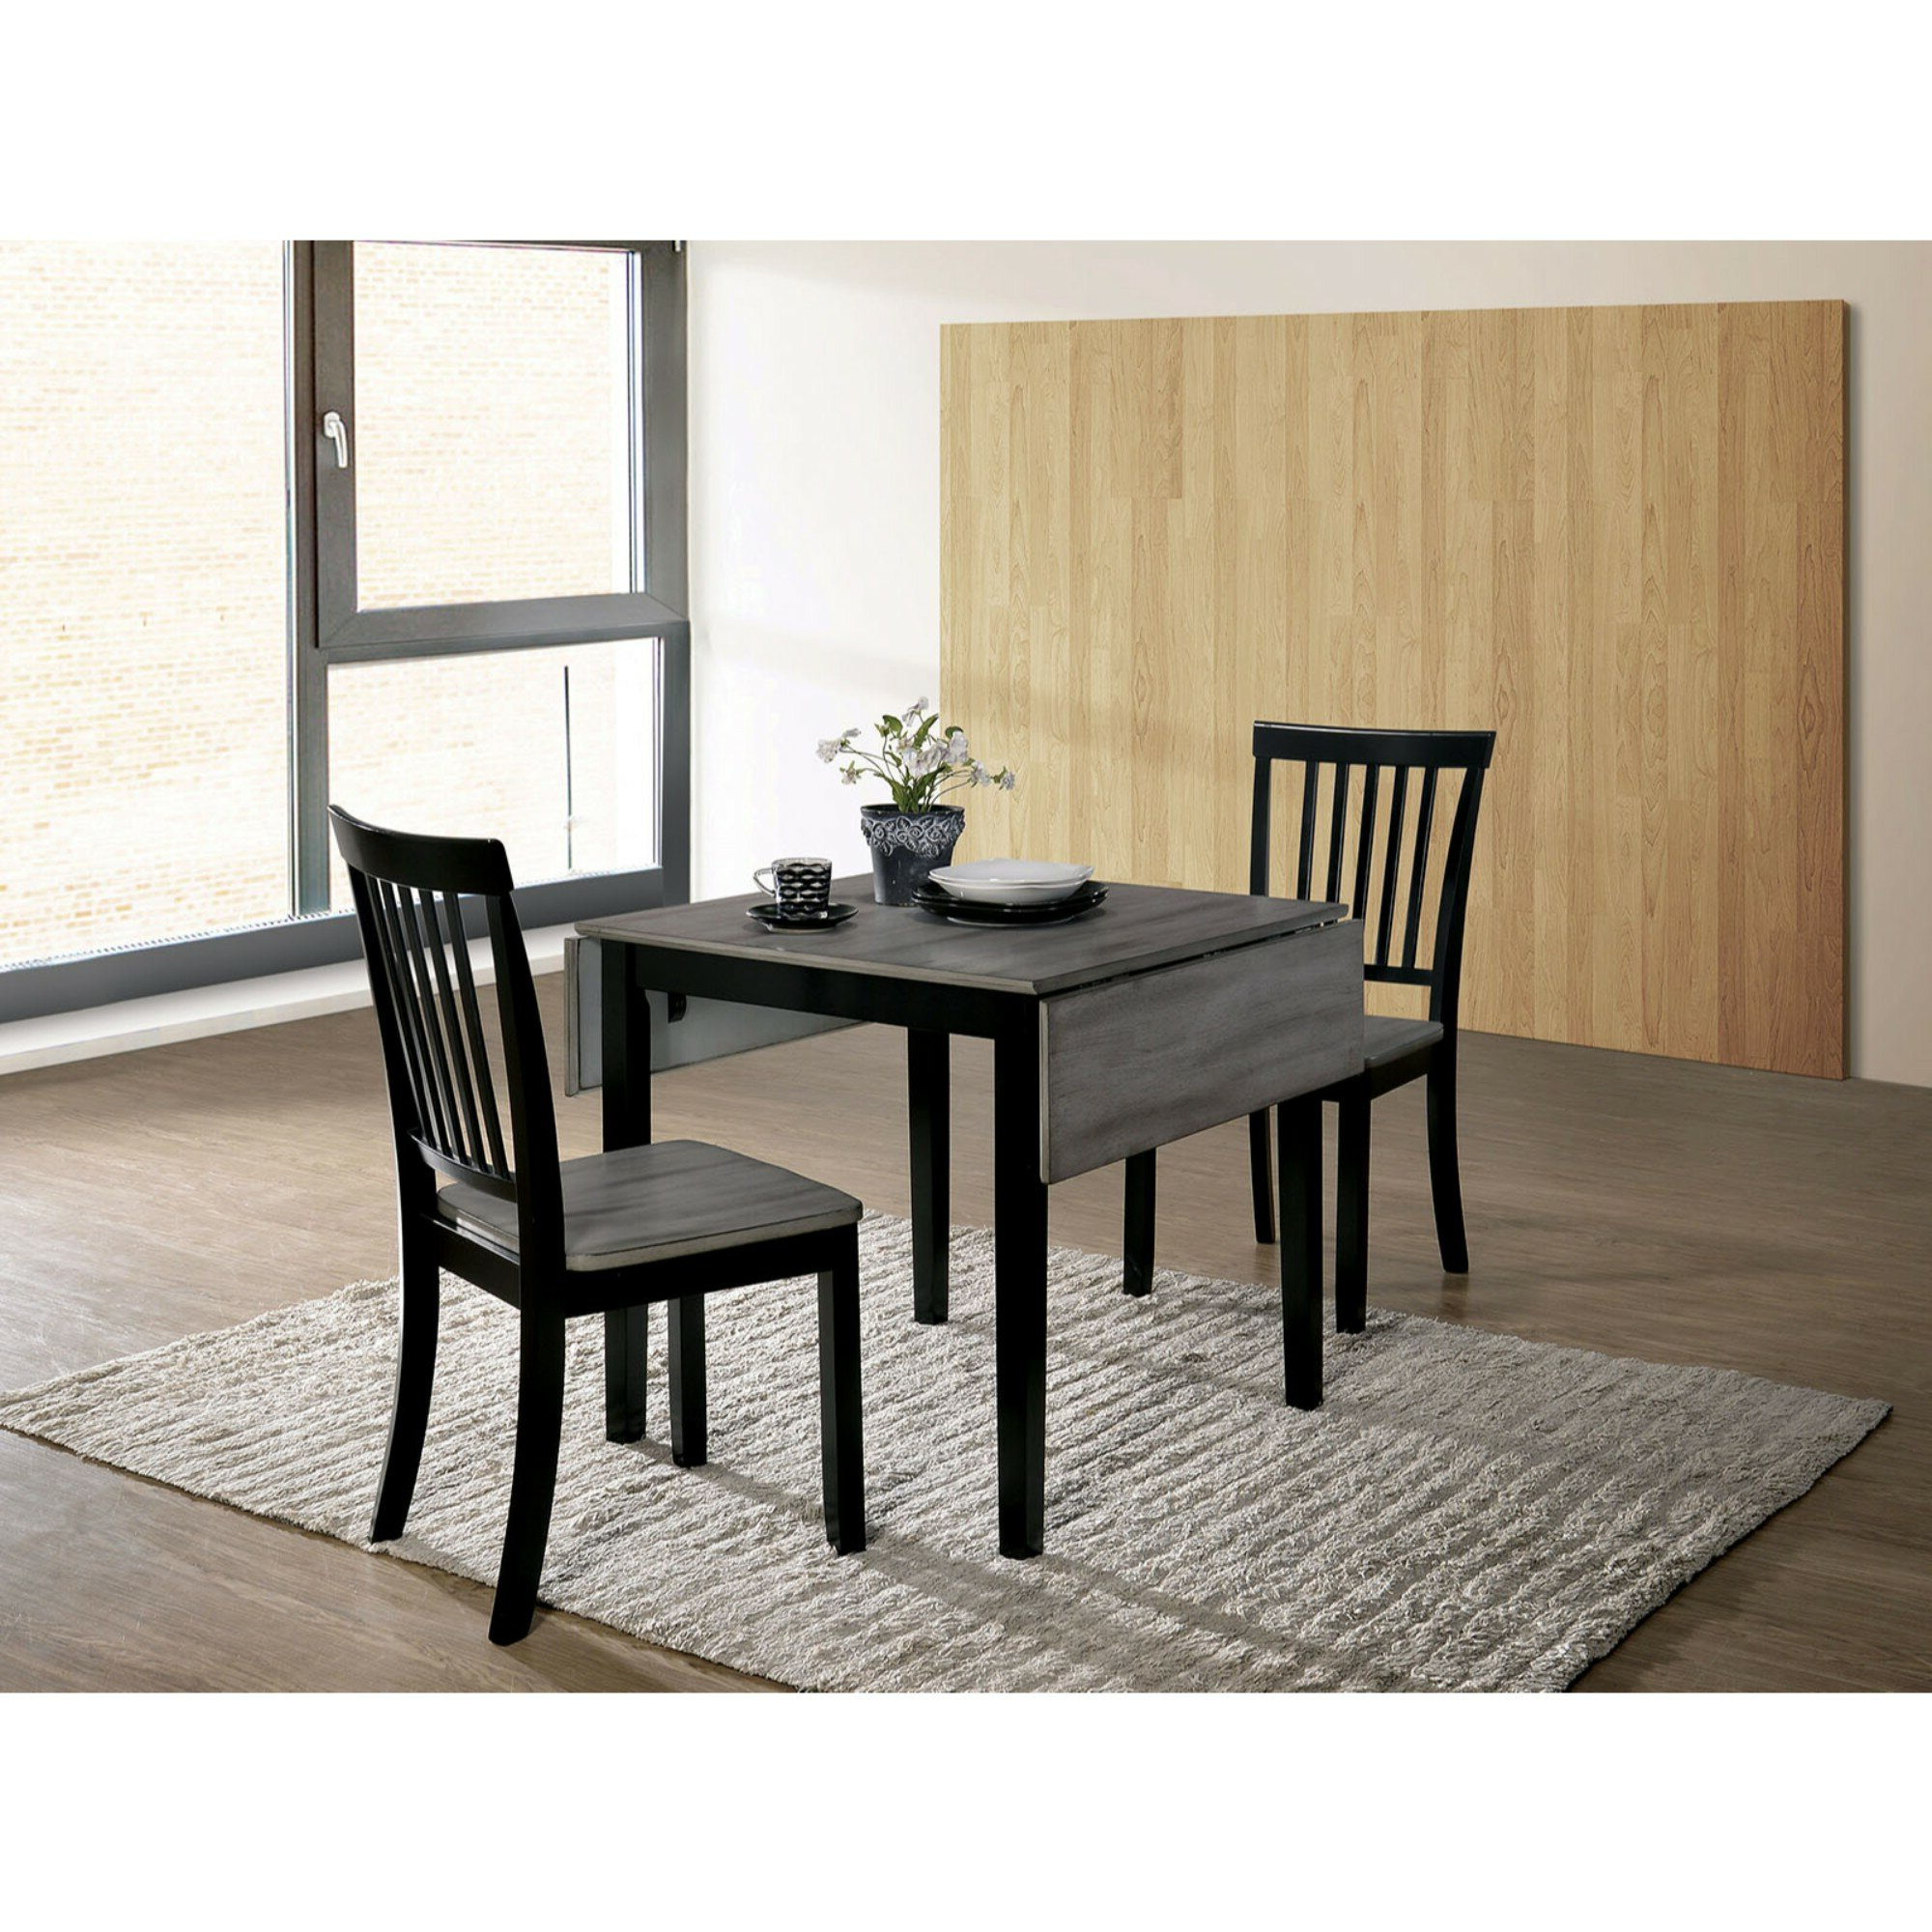 Transitional 3 Piece Drop Leaf Casual Dining Tables Set With 2018 Maone Transitional 3 Piece Drop Leaf Solid Wood Dining Set (View 24 of 30)